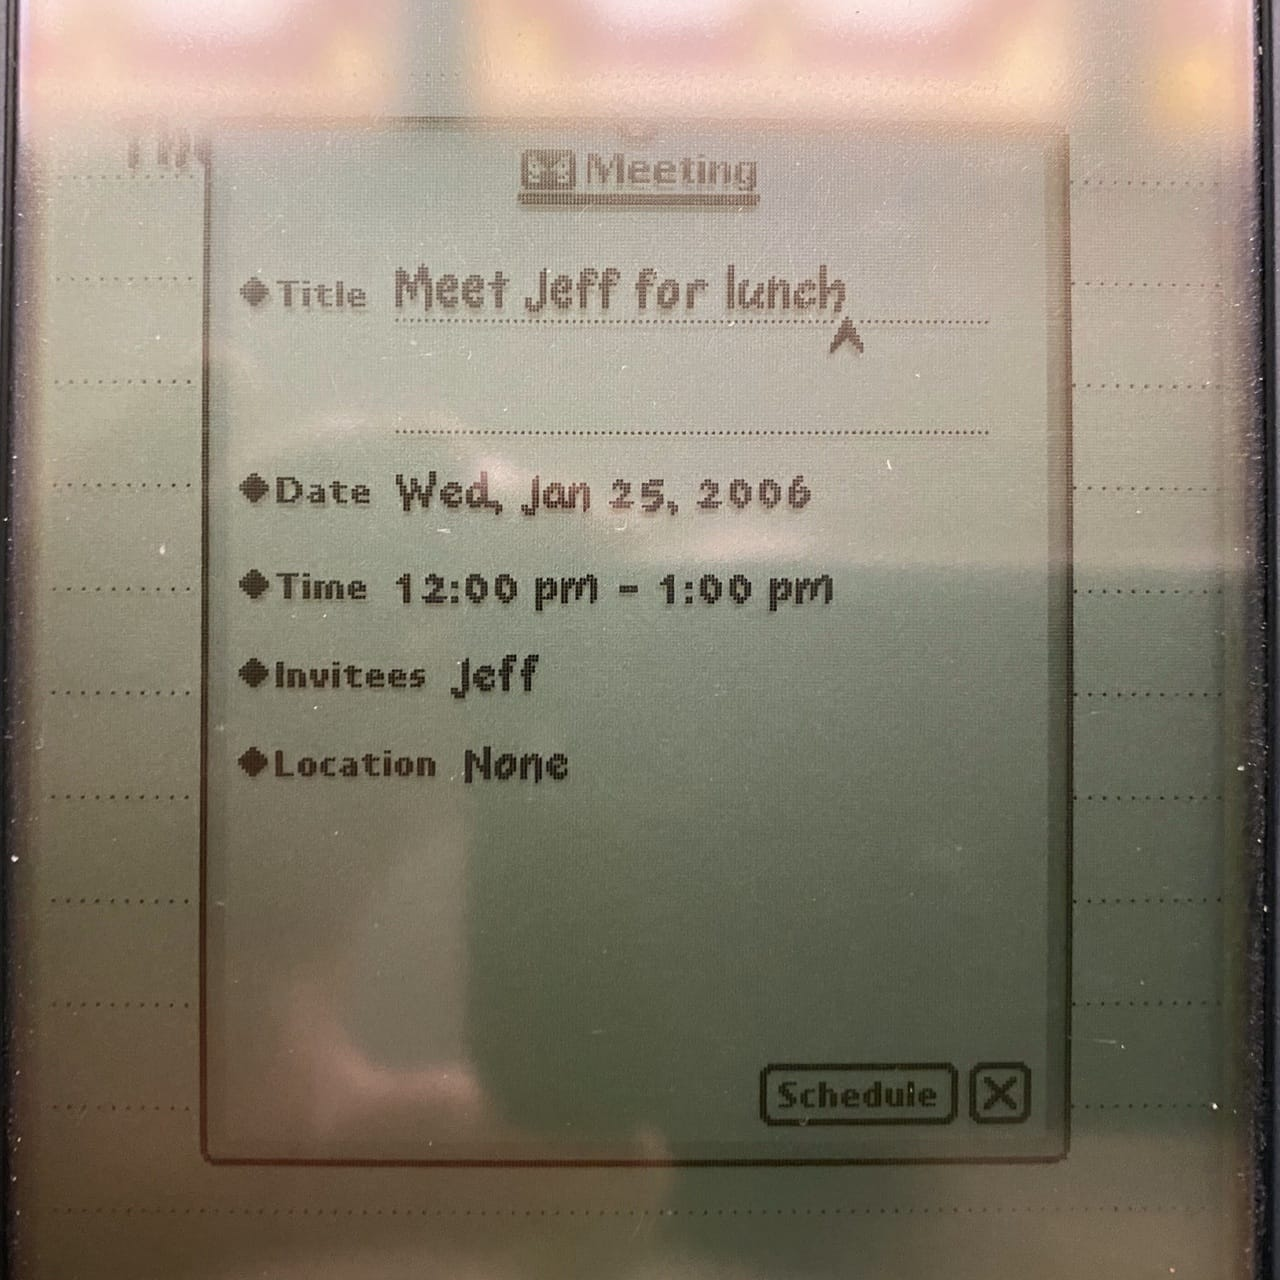 ...becomes a meeting in the Newton Calendar app. A foretaste of Siri from 1997. Note that this Newton still retained this meeting request from 2006 in 2020!